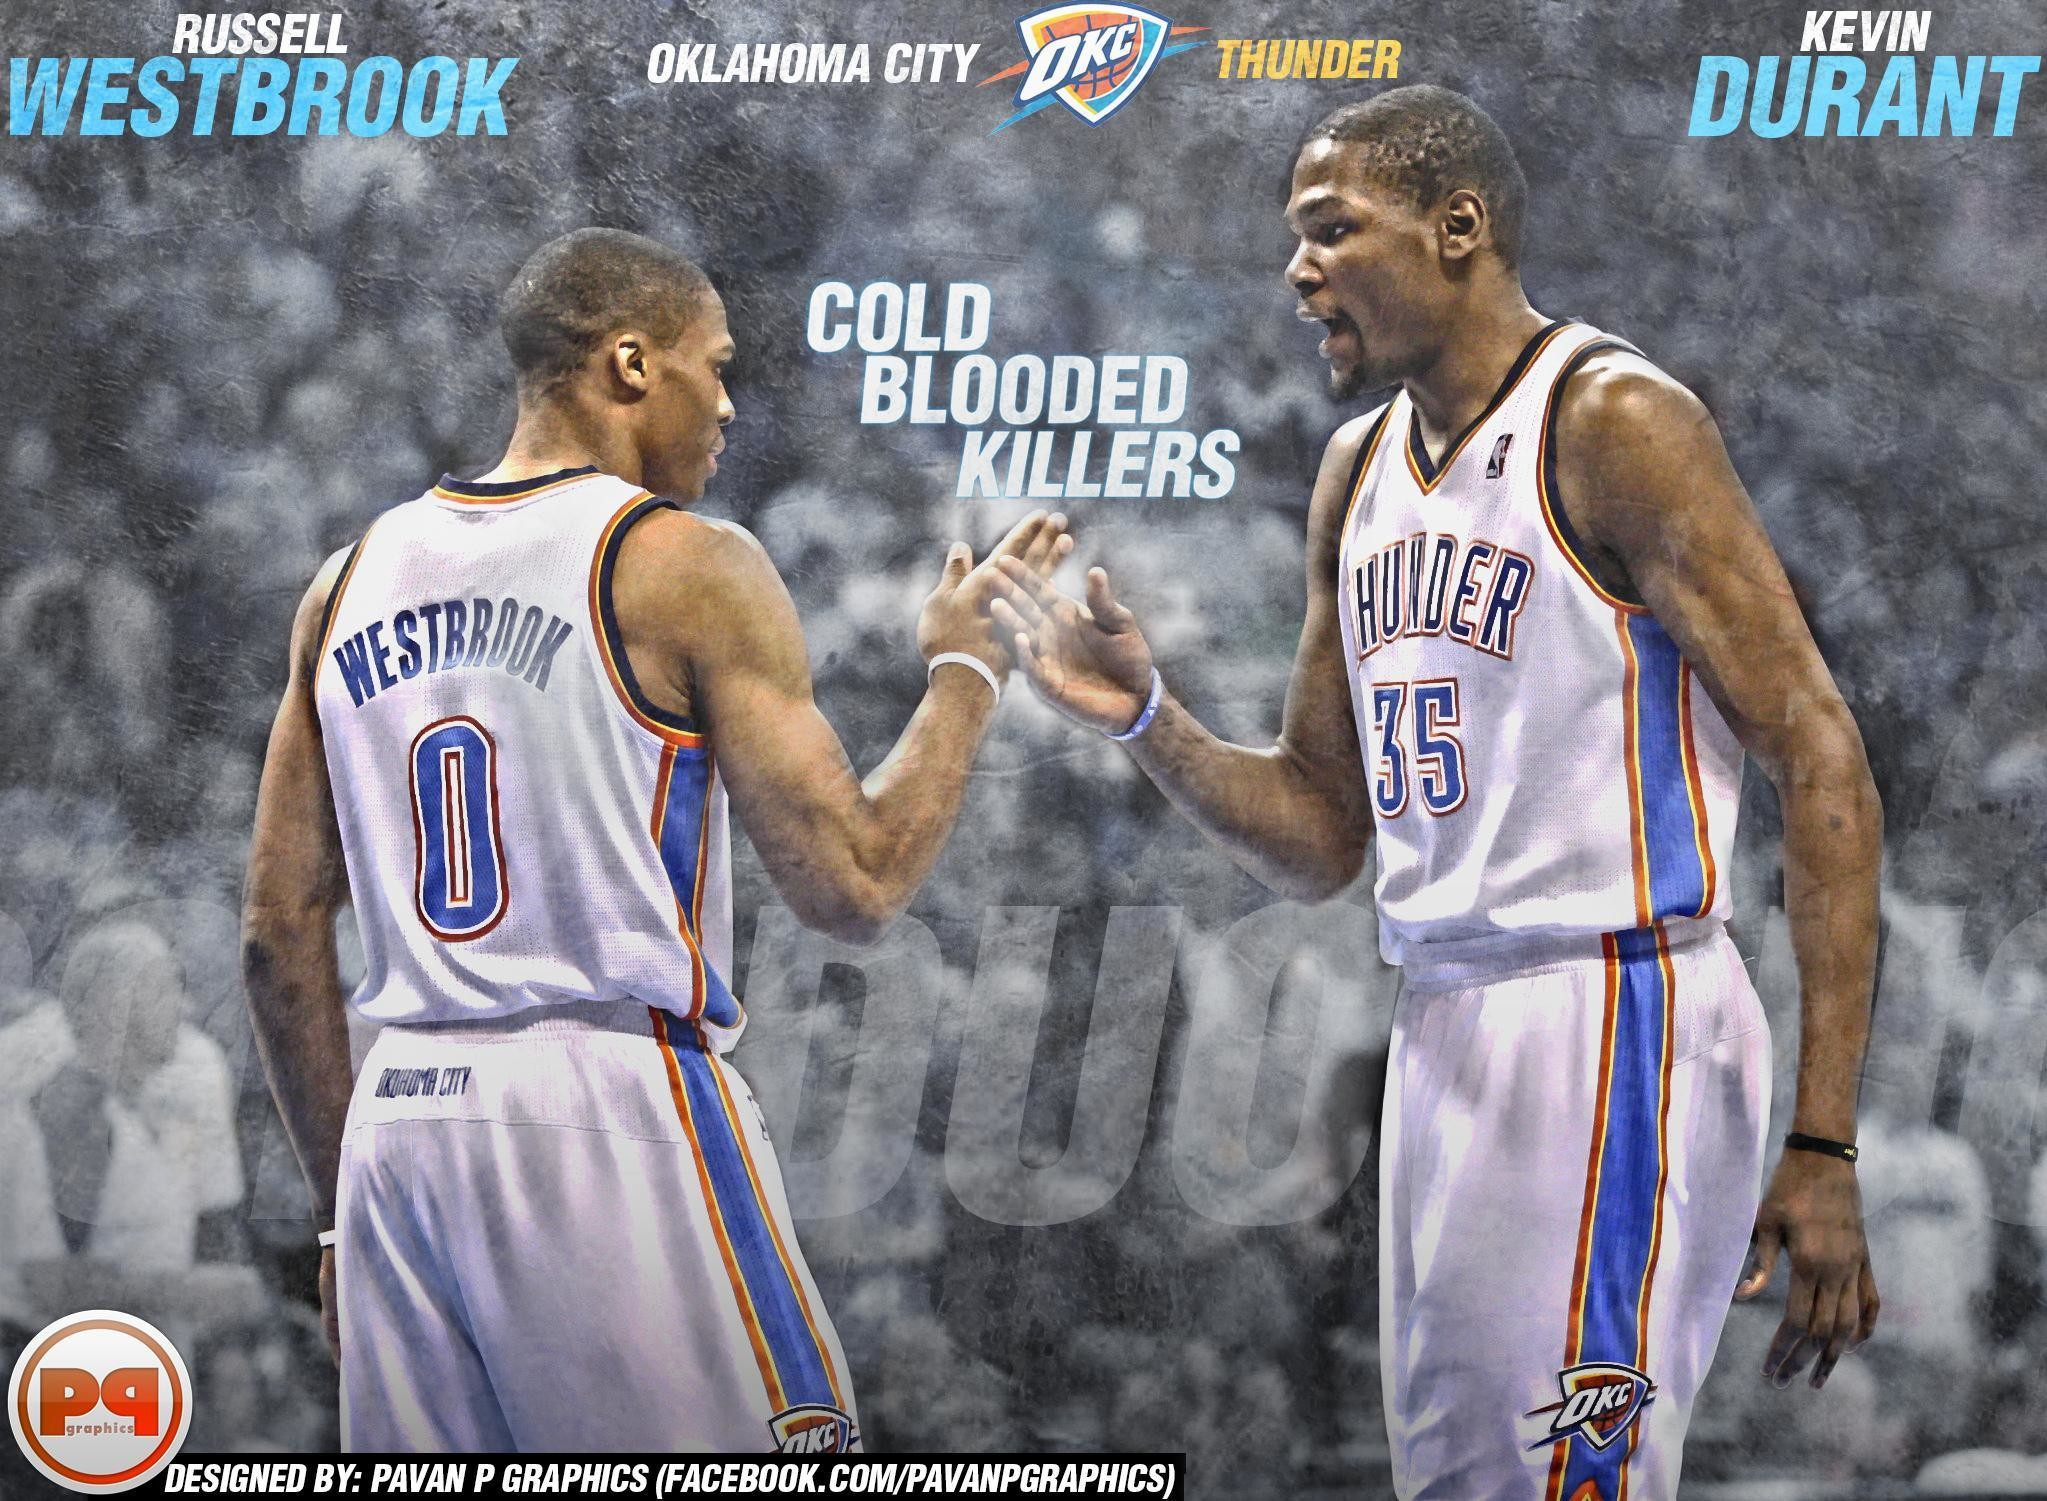 Res: 2047x1501, Russell westbrook and kevin durant wallpaper - photo#4